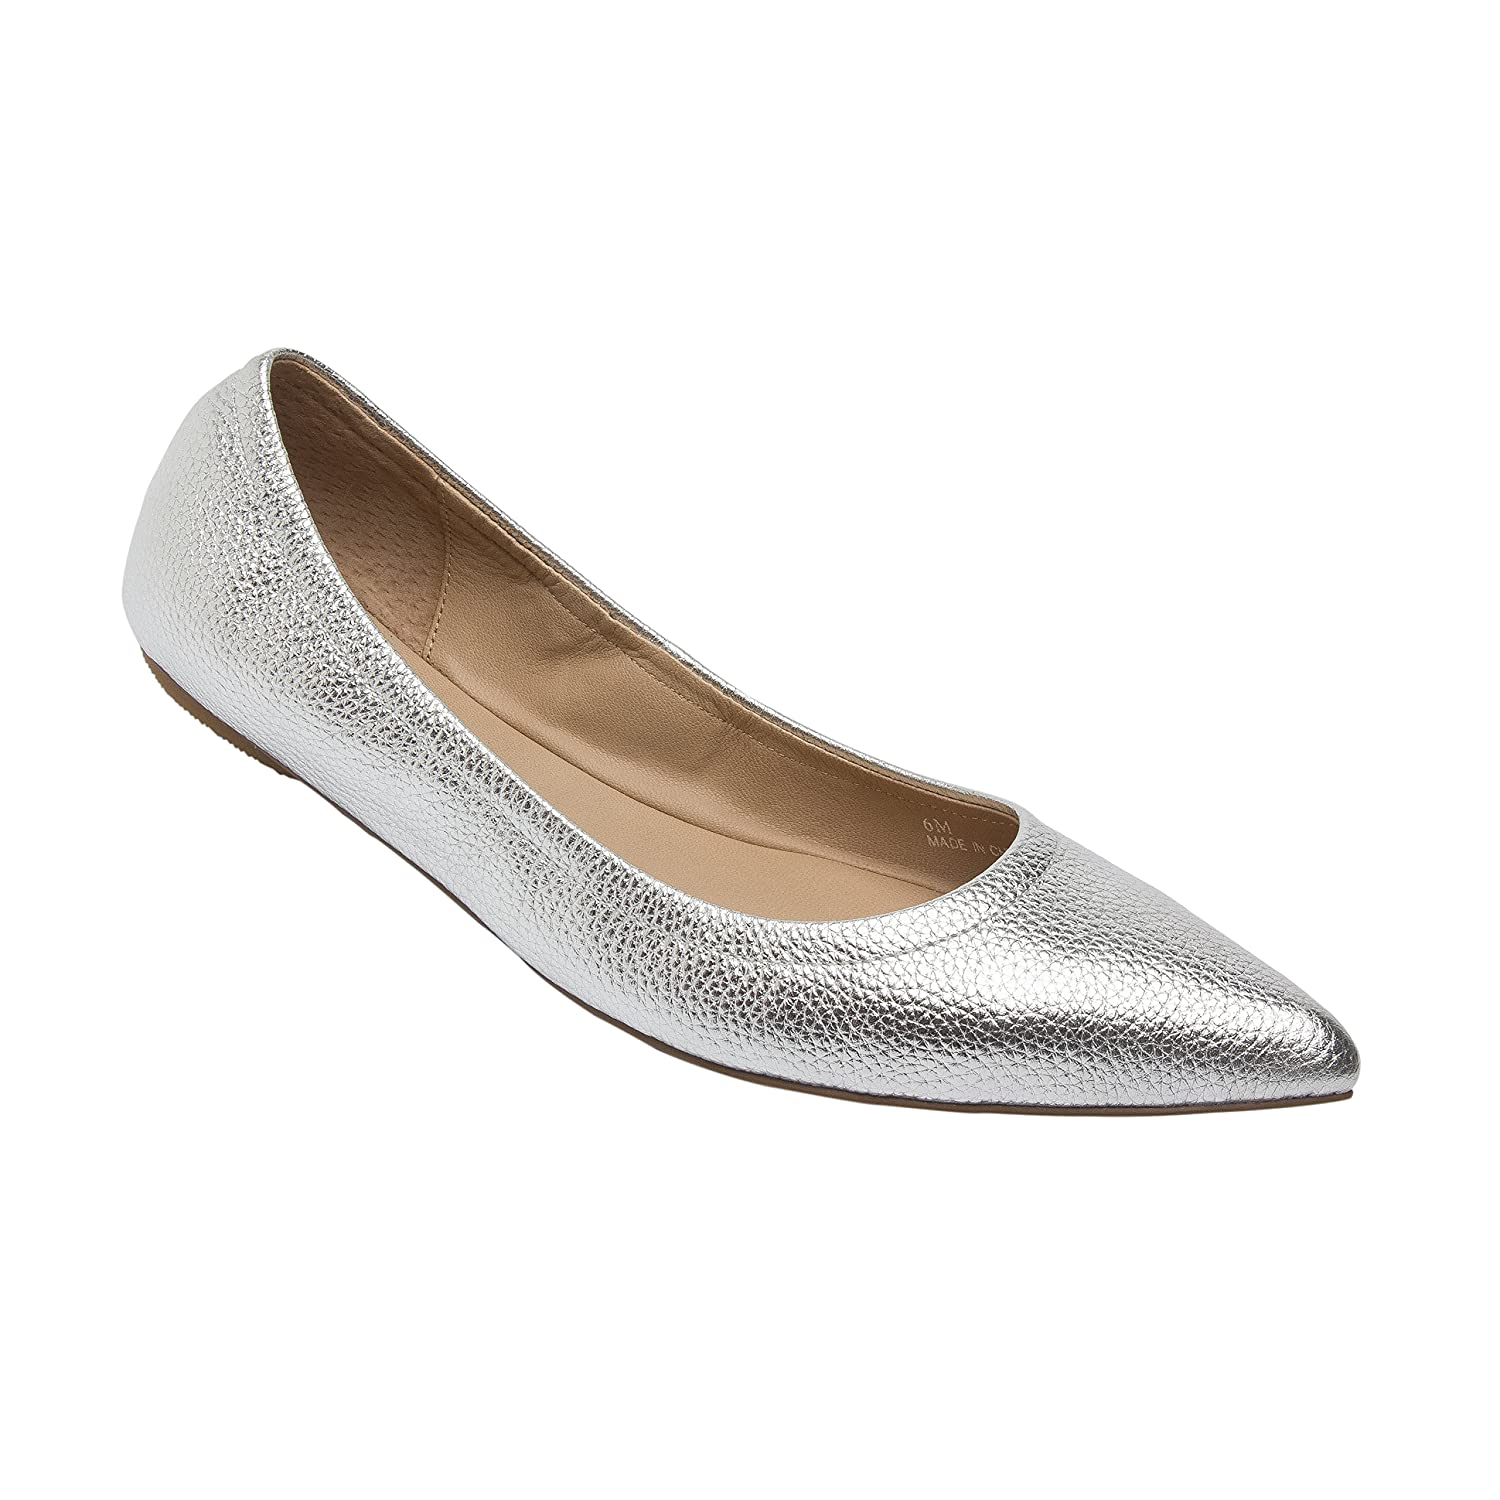 NICO | Women's Pointy Toe Elasticized Leather or Suede Ballet Flat (New Spring) B0778X8YJR 6 M US|Silver Pebbled Leather